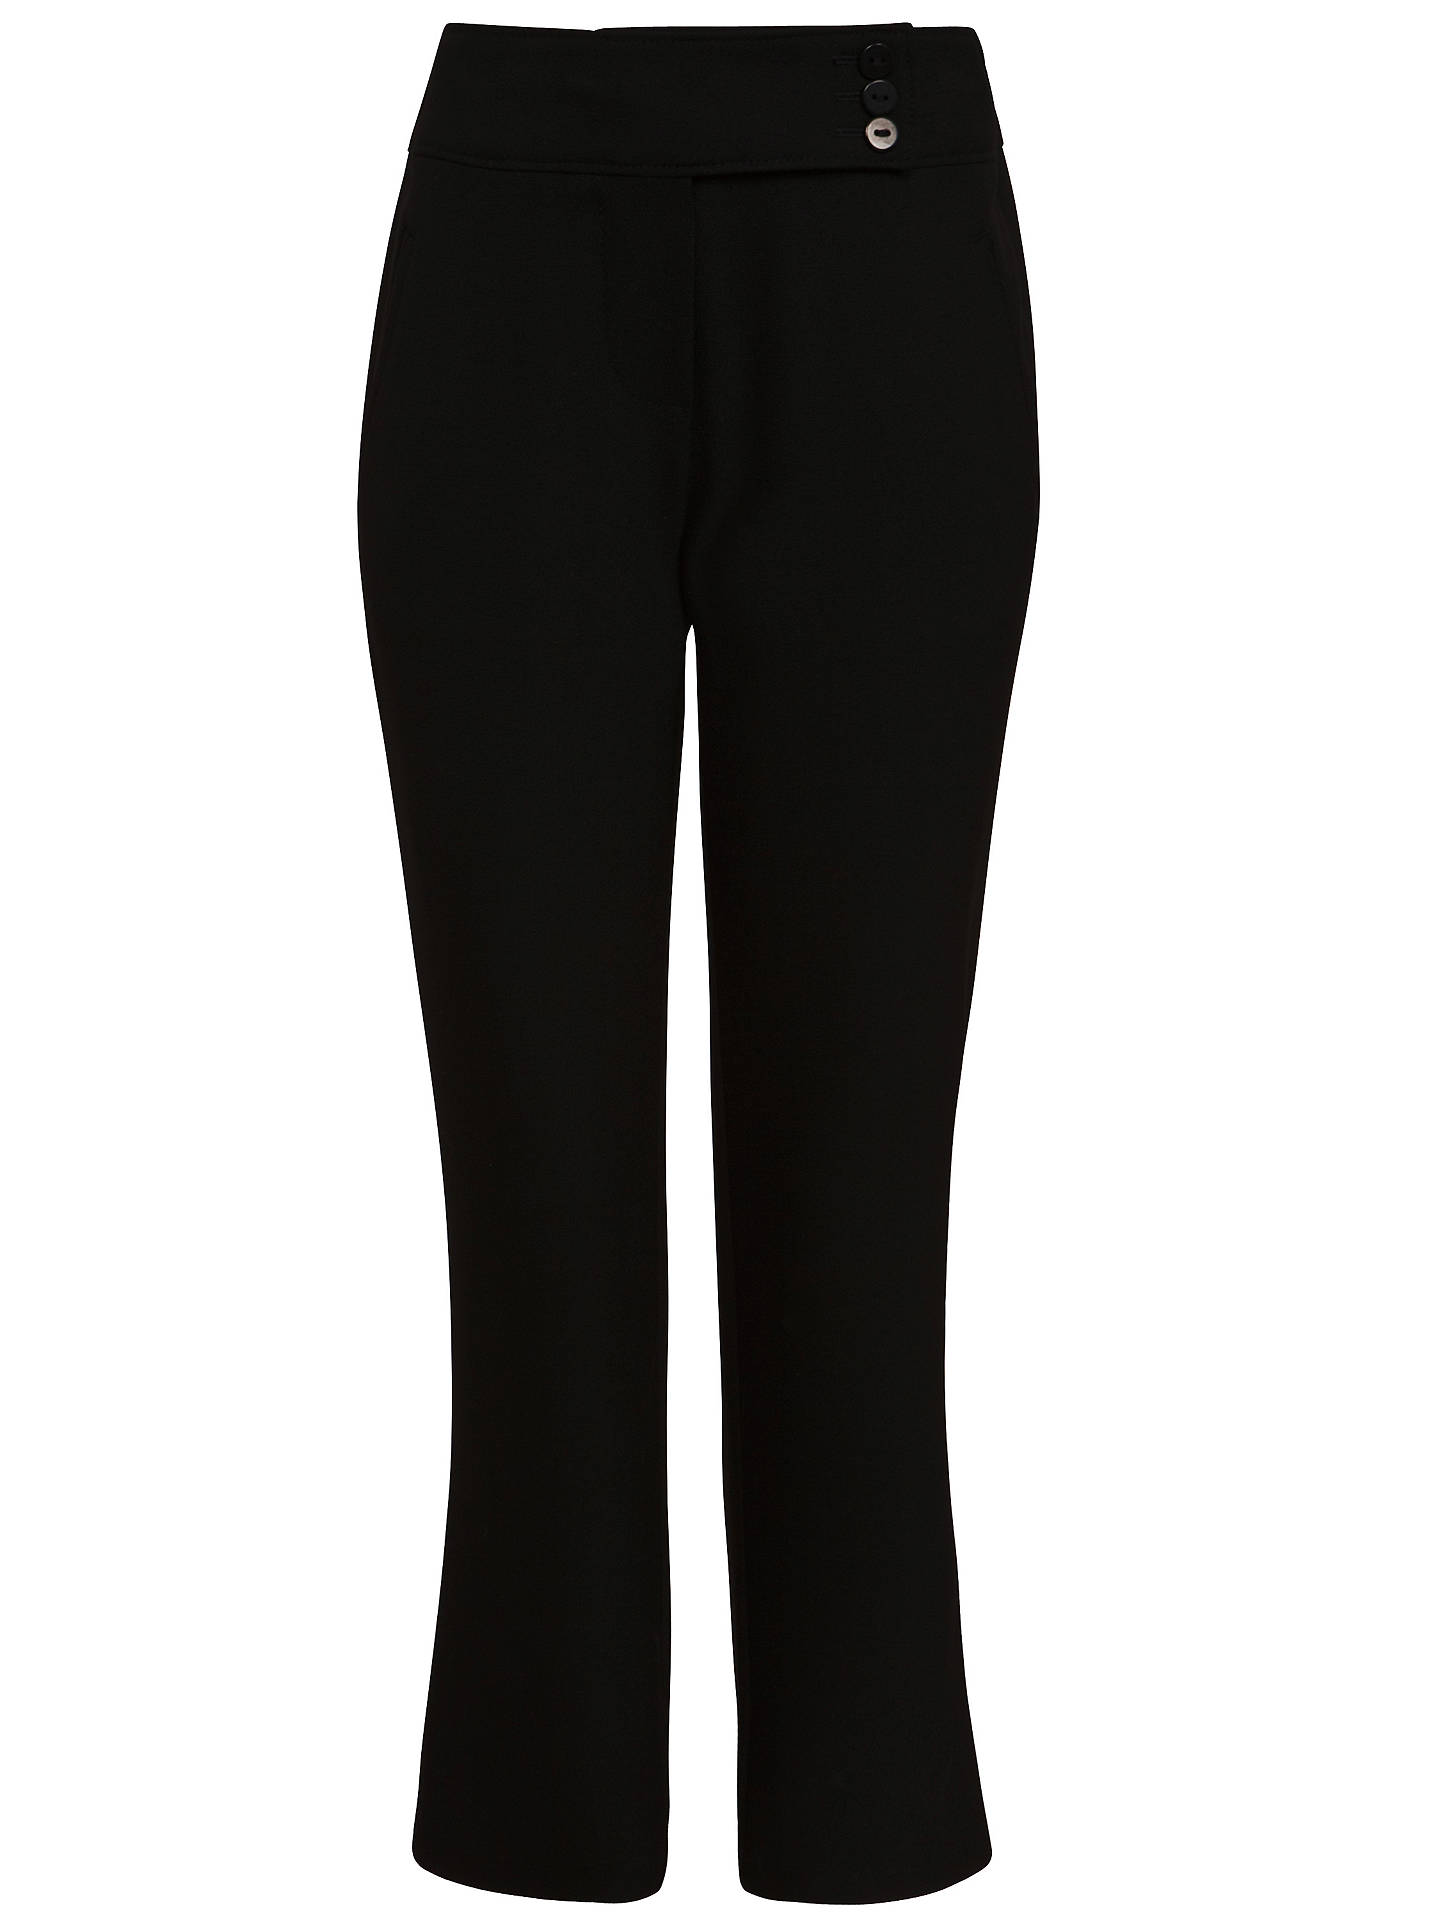 BuyJohn Lewis & Partners Girls' Adjustable Waist Button School Trousers, Black, 3 years Online at johnlewis.com